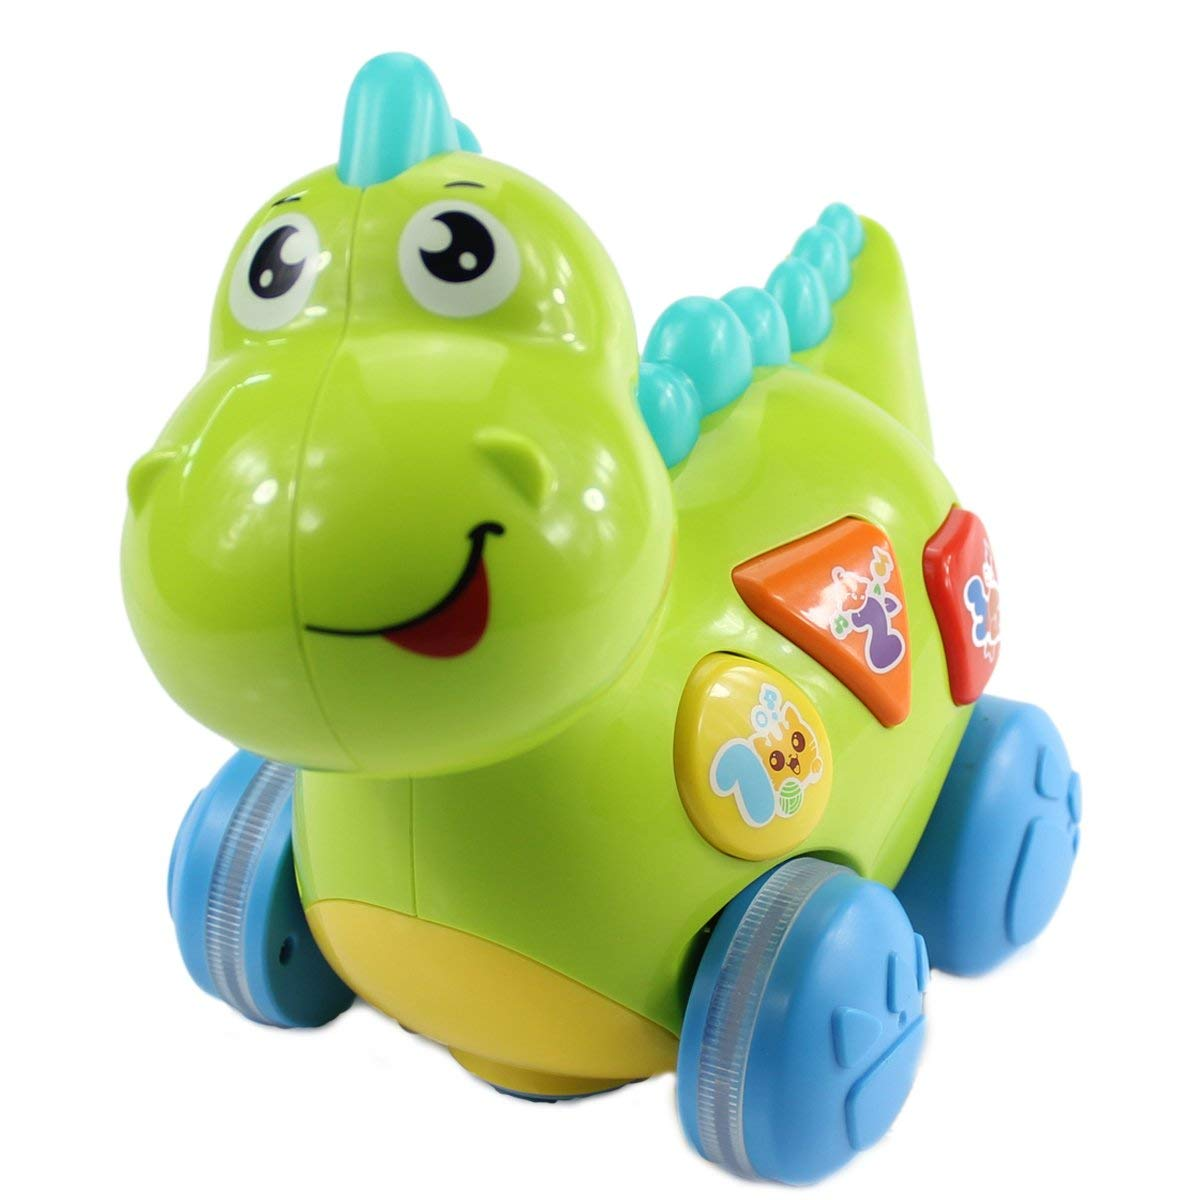 34f660582d8c Get Quotations · fisca Baby Toys Musical Walking Dinosaur for Babies    Toddlers